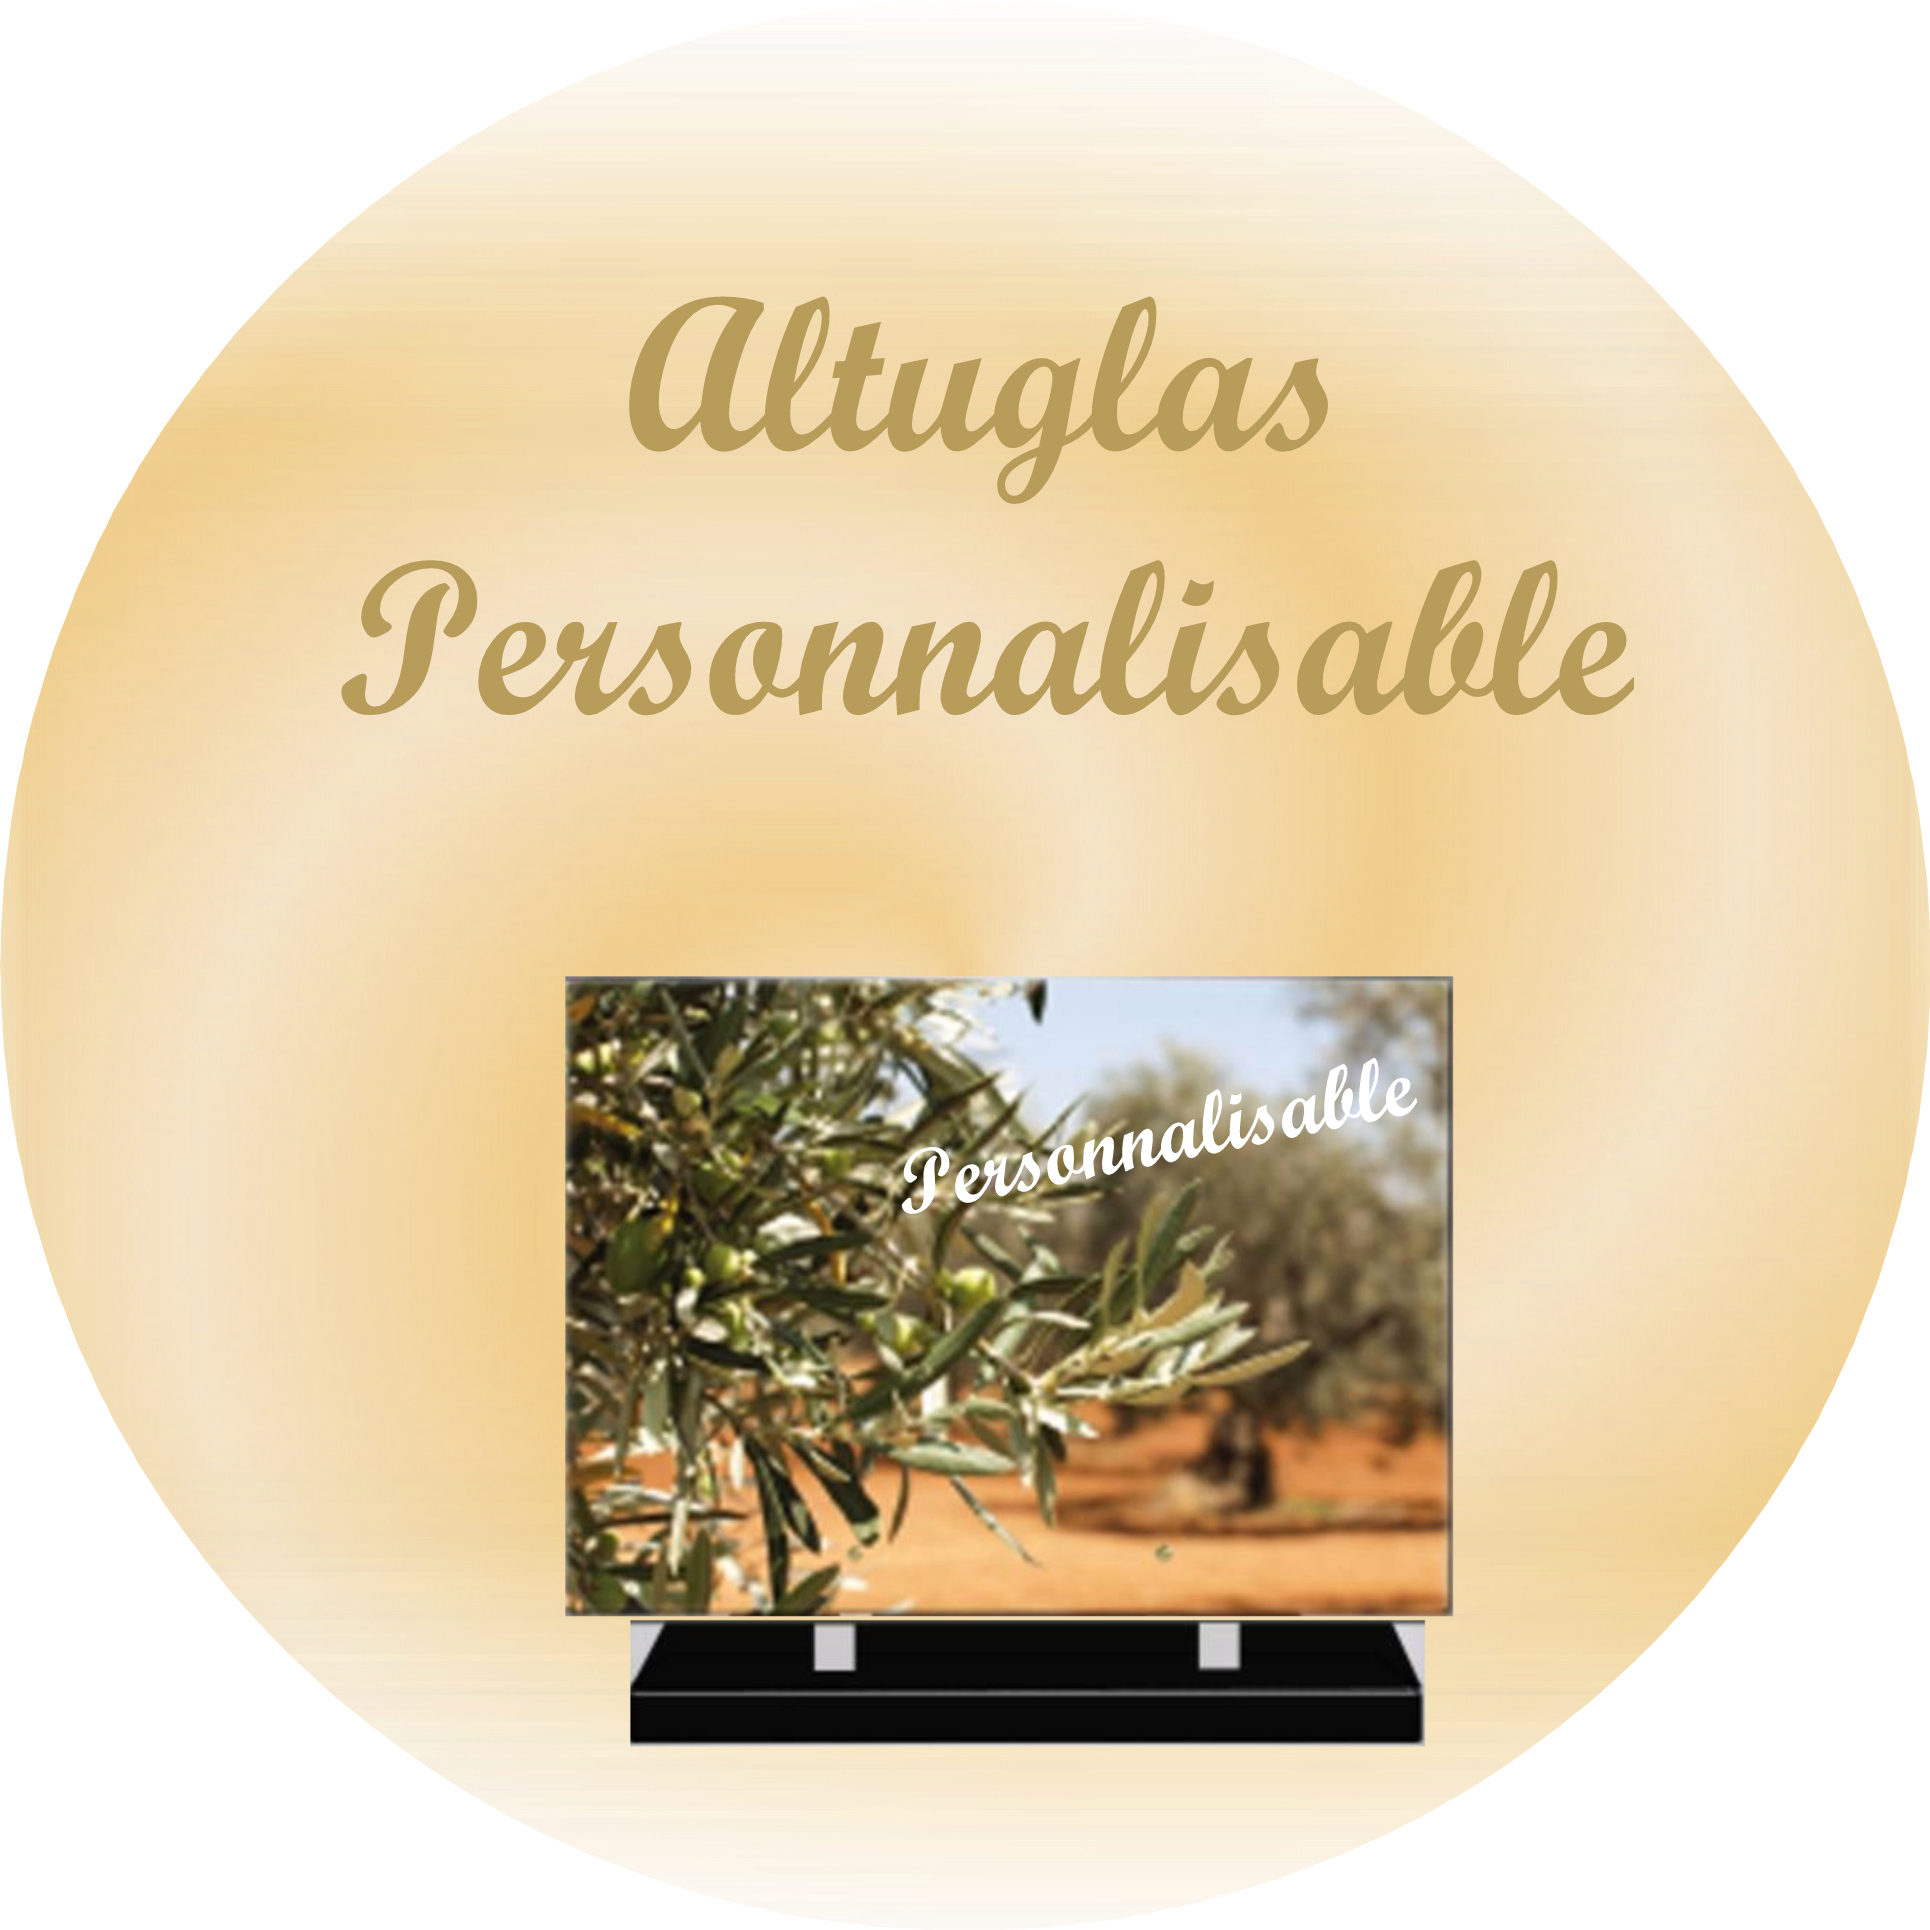 PLAQUES FUNERAIRES MODERNES PERSONNALISABLES RECTANGLE BOURS